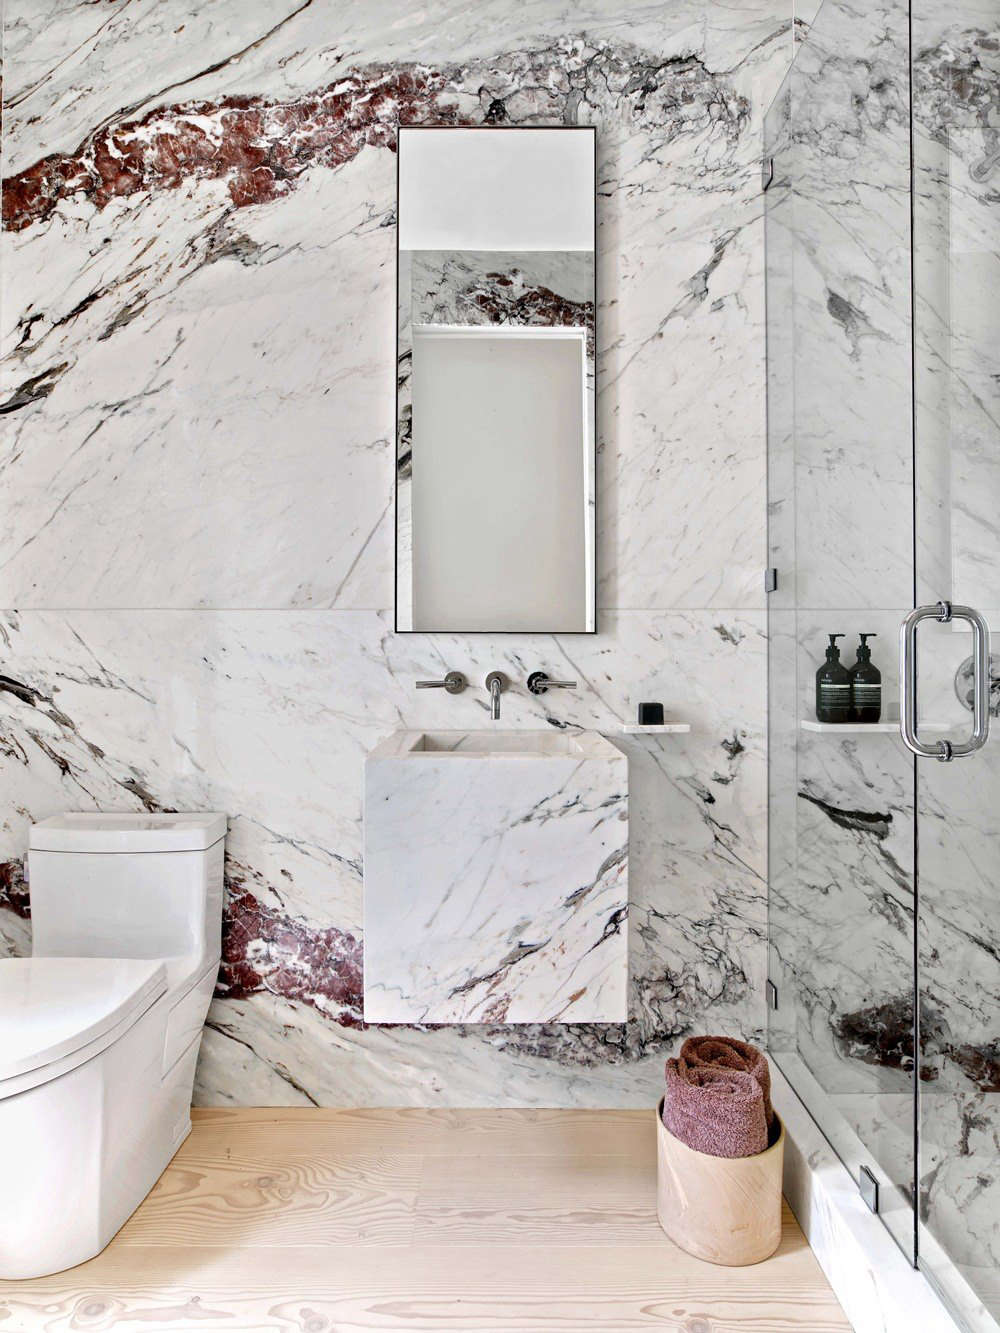 Best Professional Bath: A Dramatic Marble Powder Room by CCS ...